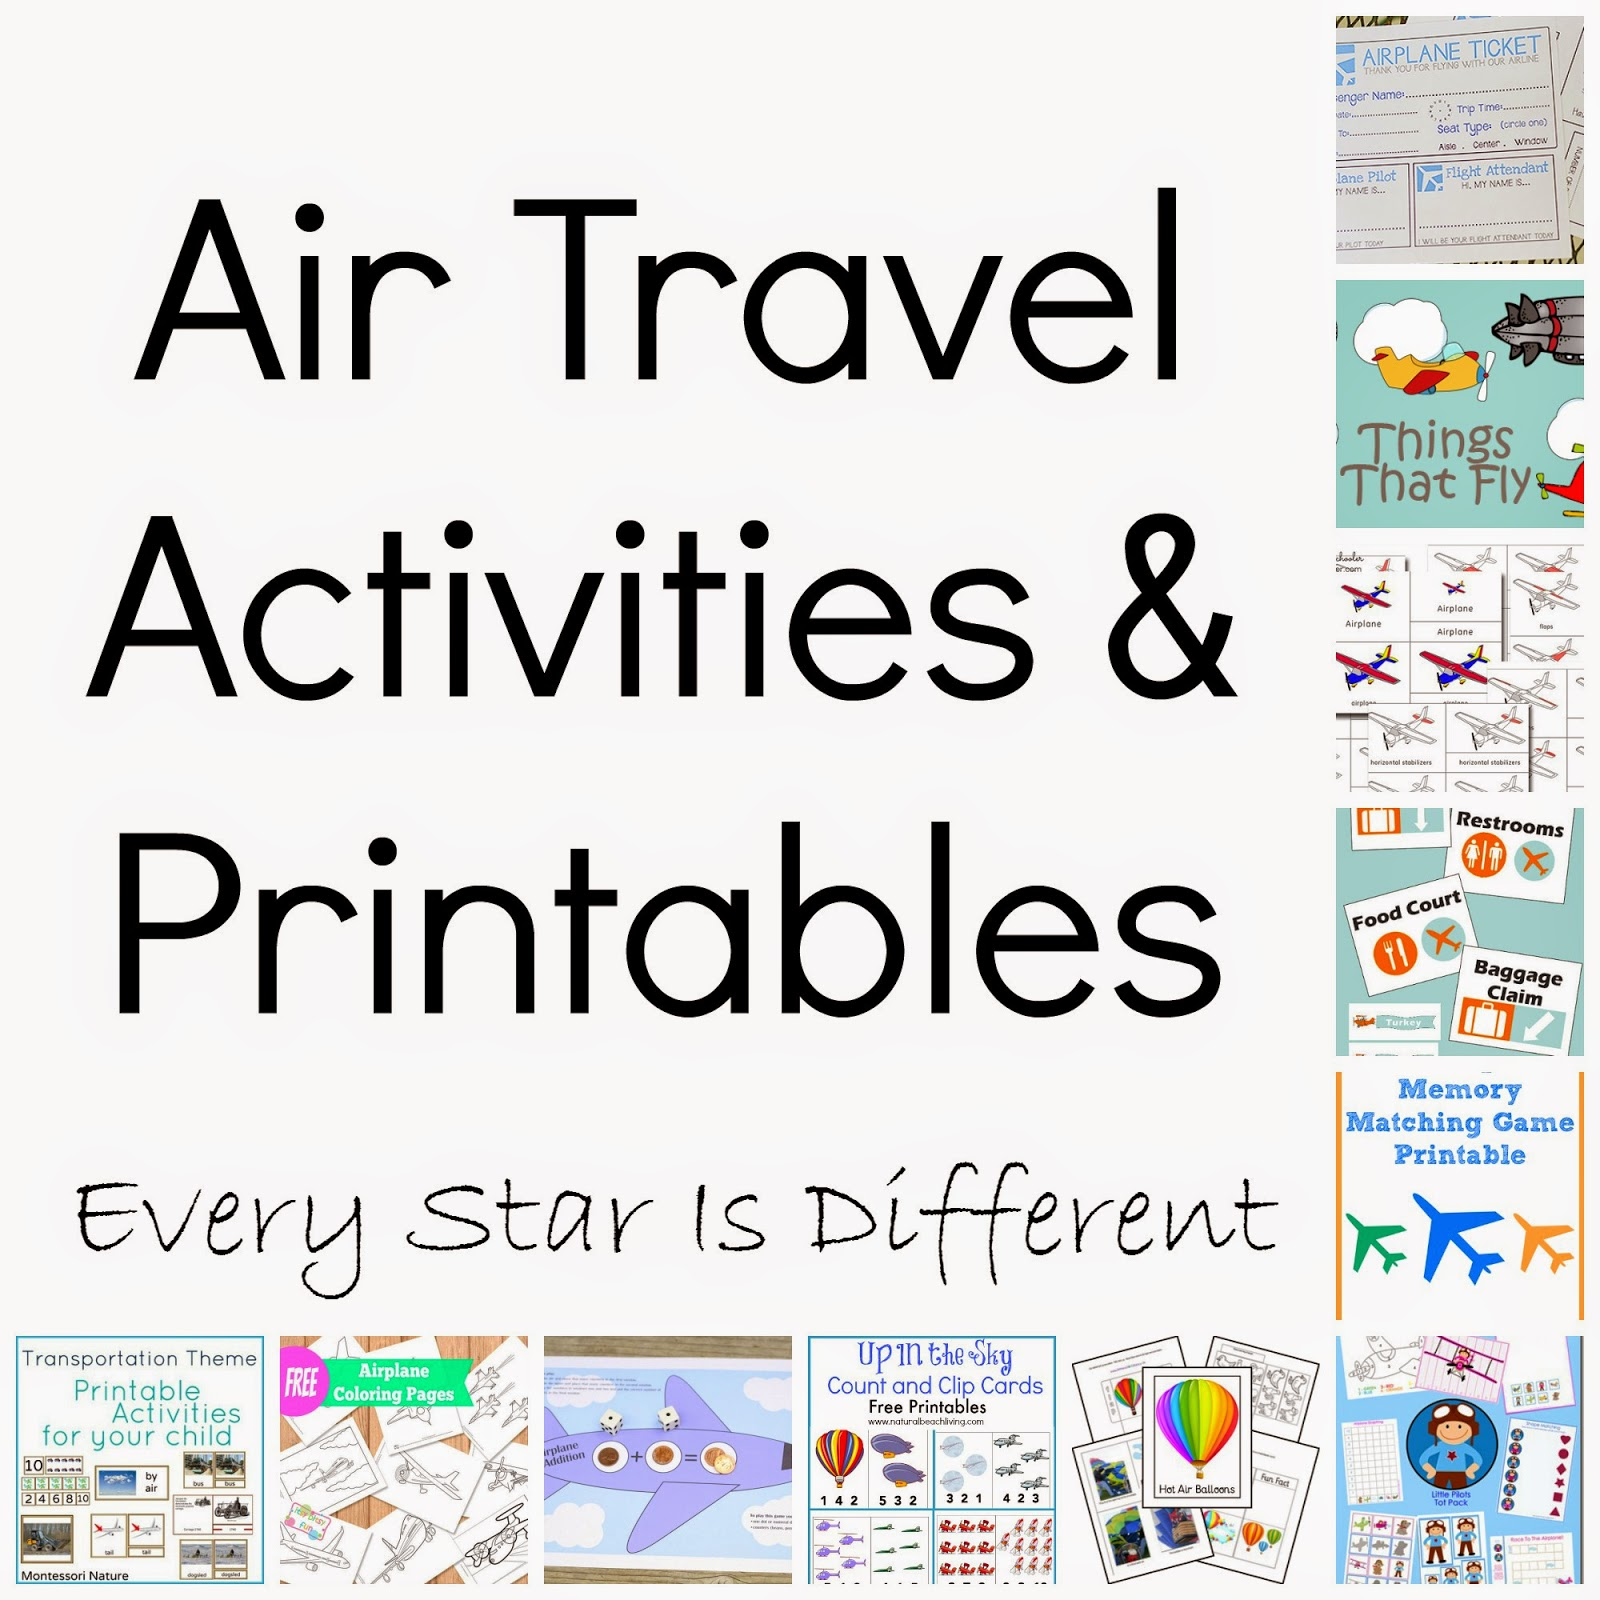 Air Travel Activities